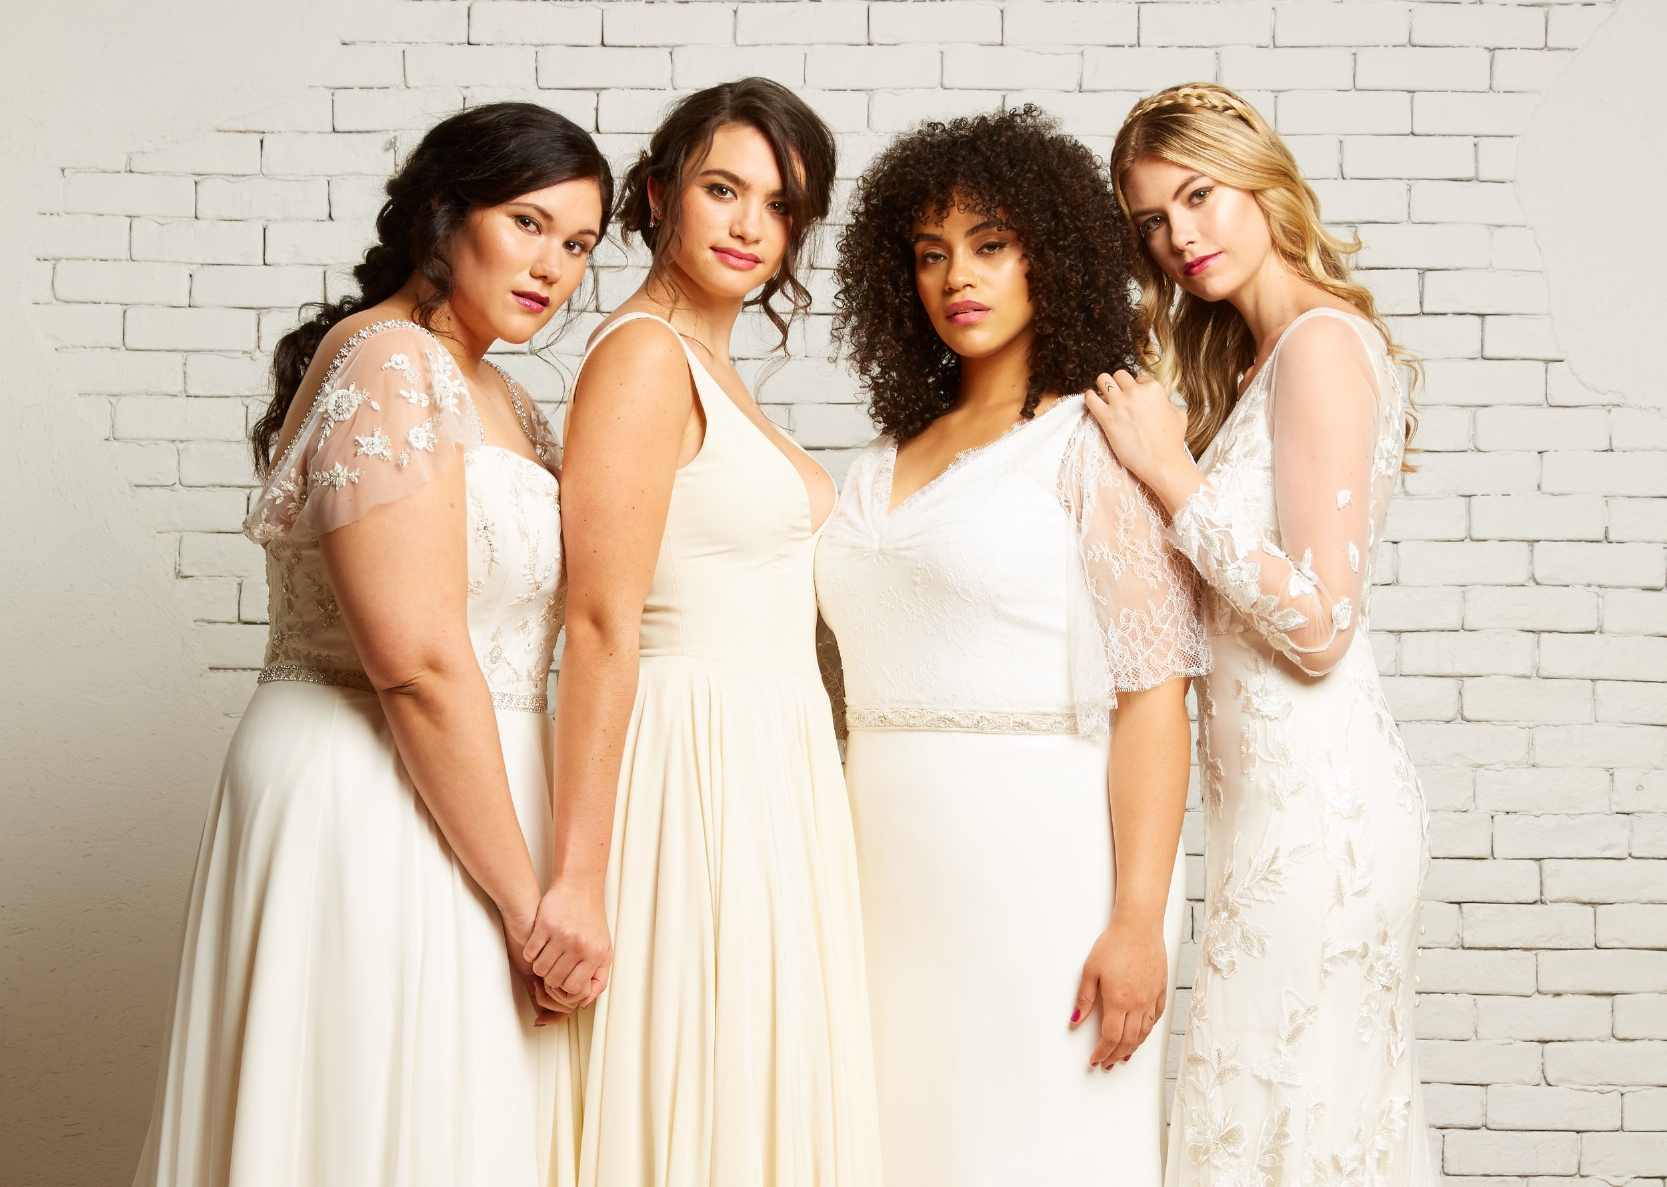 plus_size_wedding_gown_designer_new_york_brooklyn_diversity_inclusive_fashion.jpg